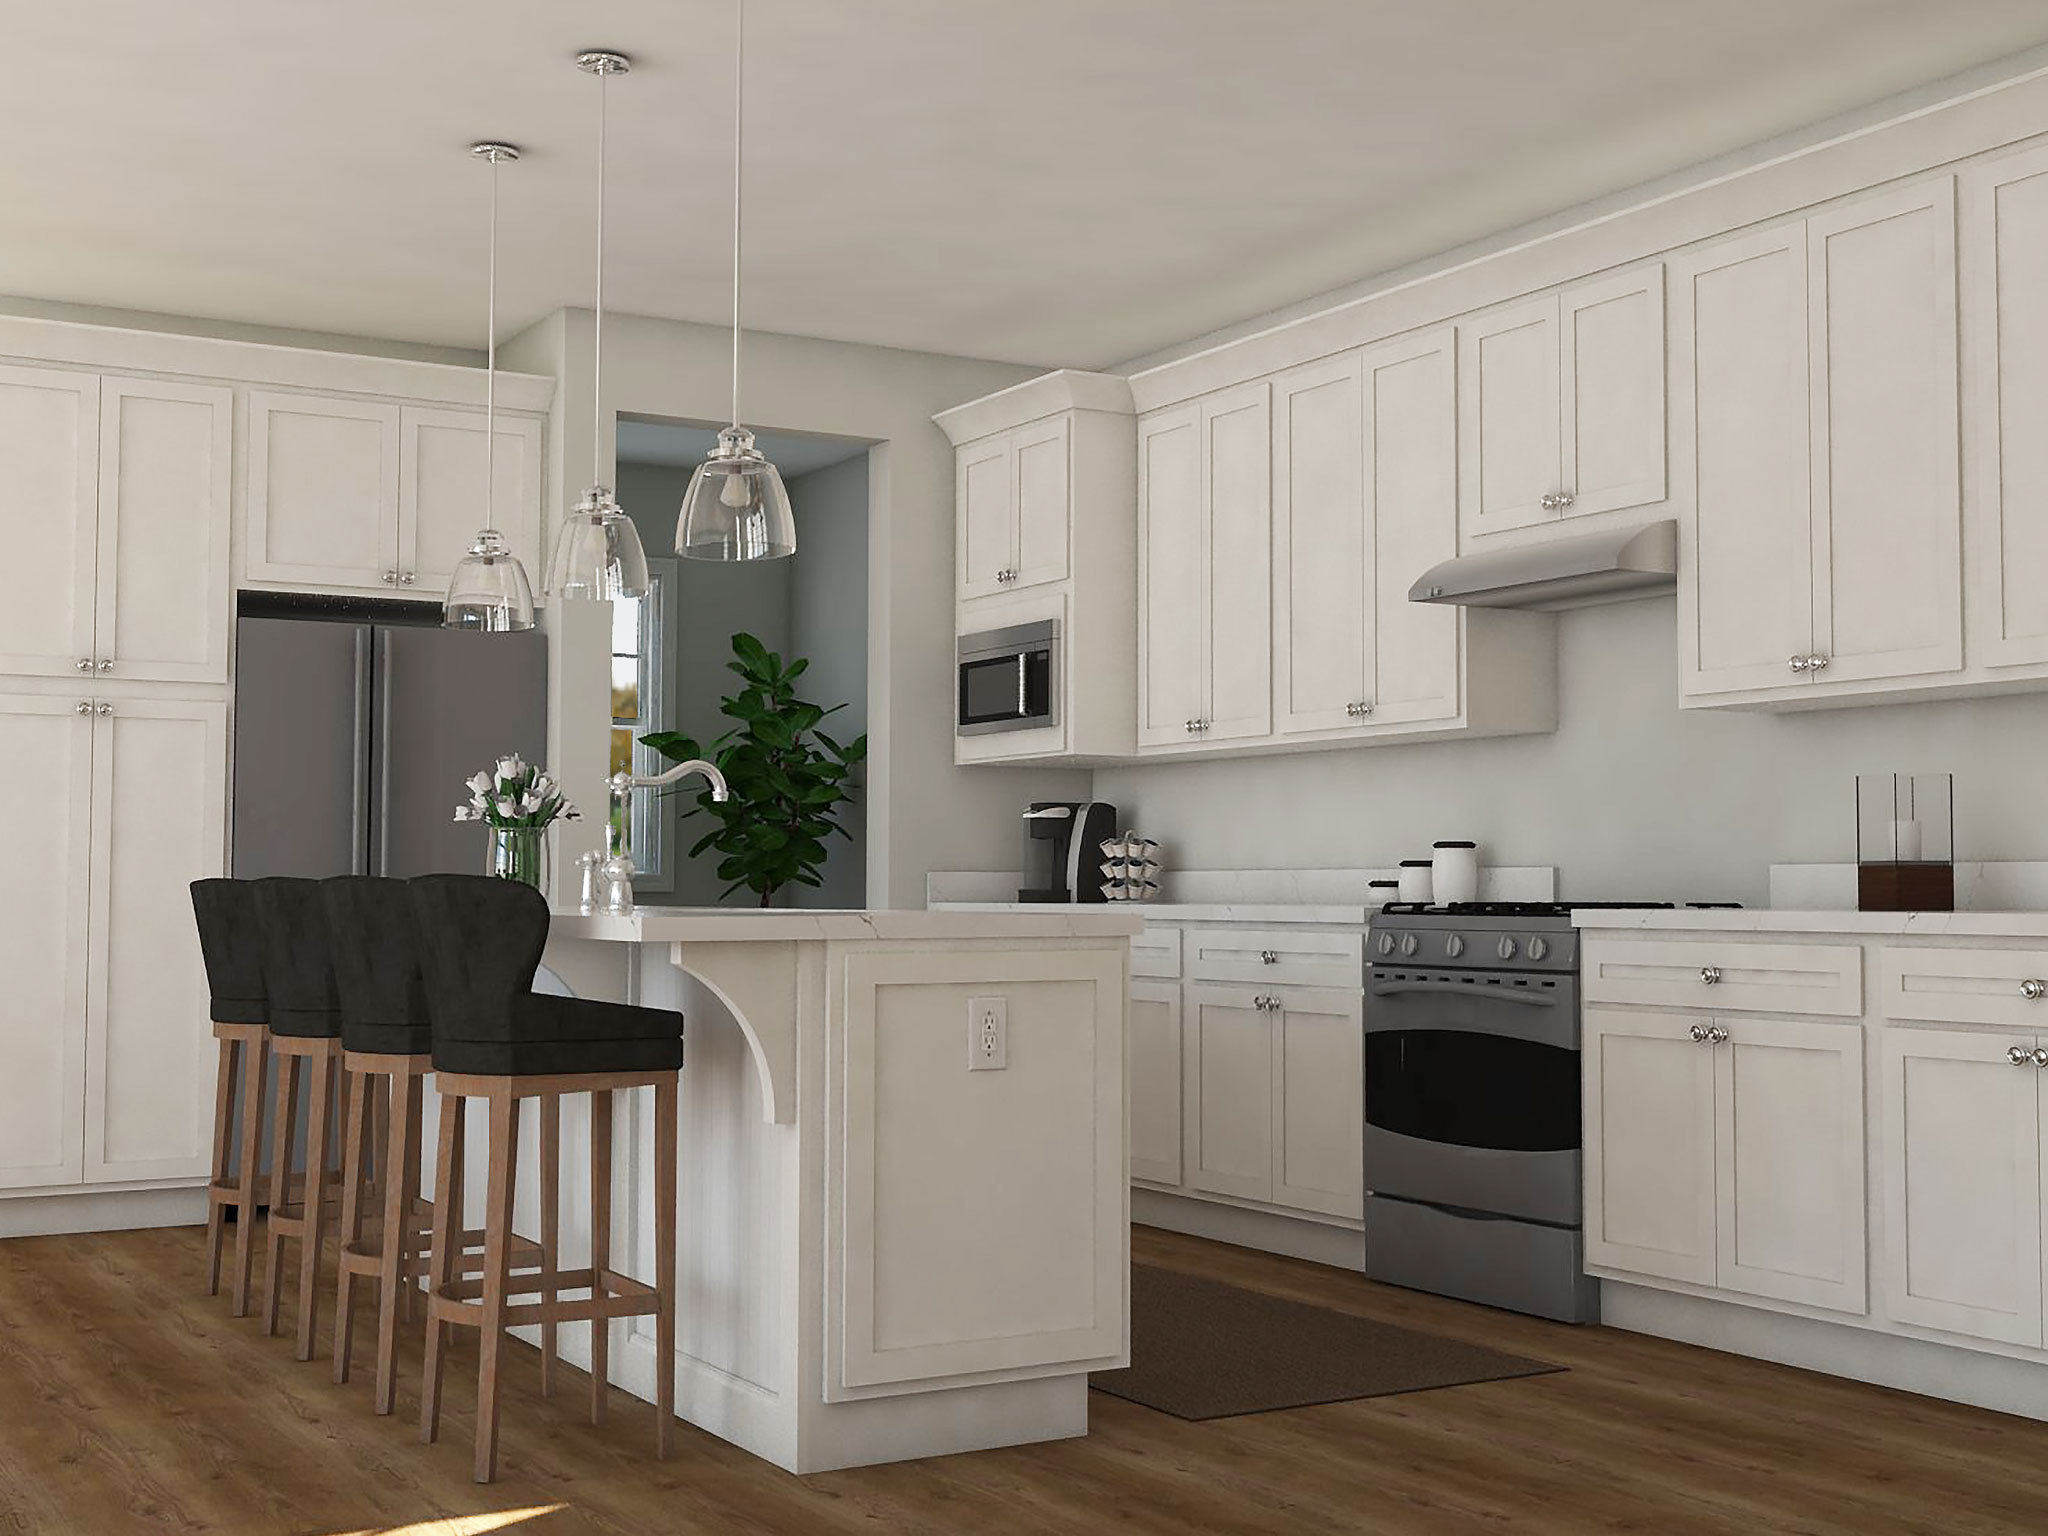 Designer Kitchen Rendering